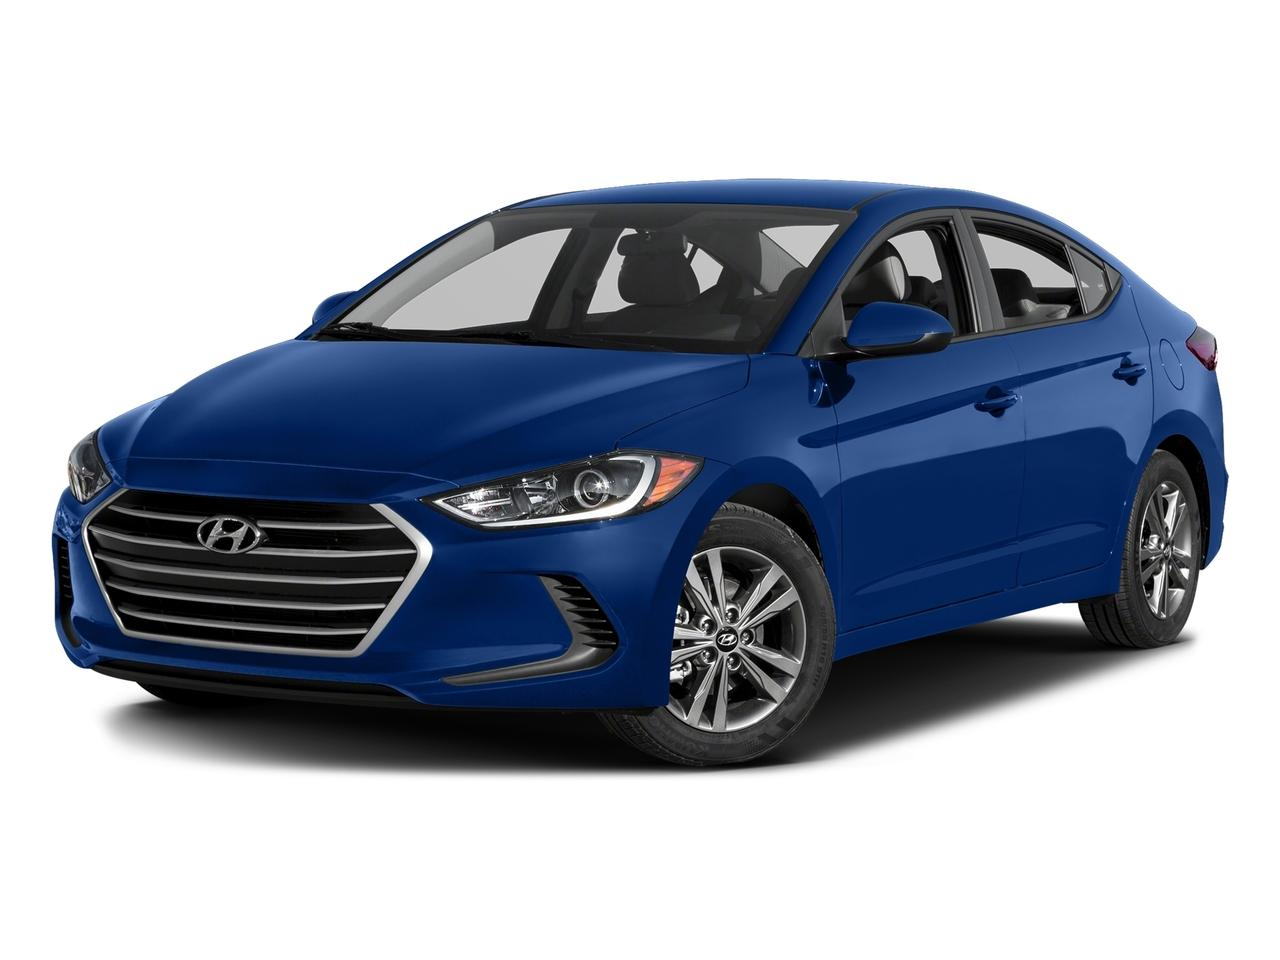 2017 Hyundai Elantra Vehicle Photo in Beaufort, SC 29906